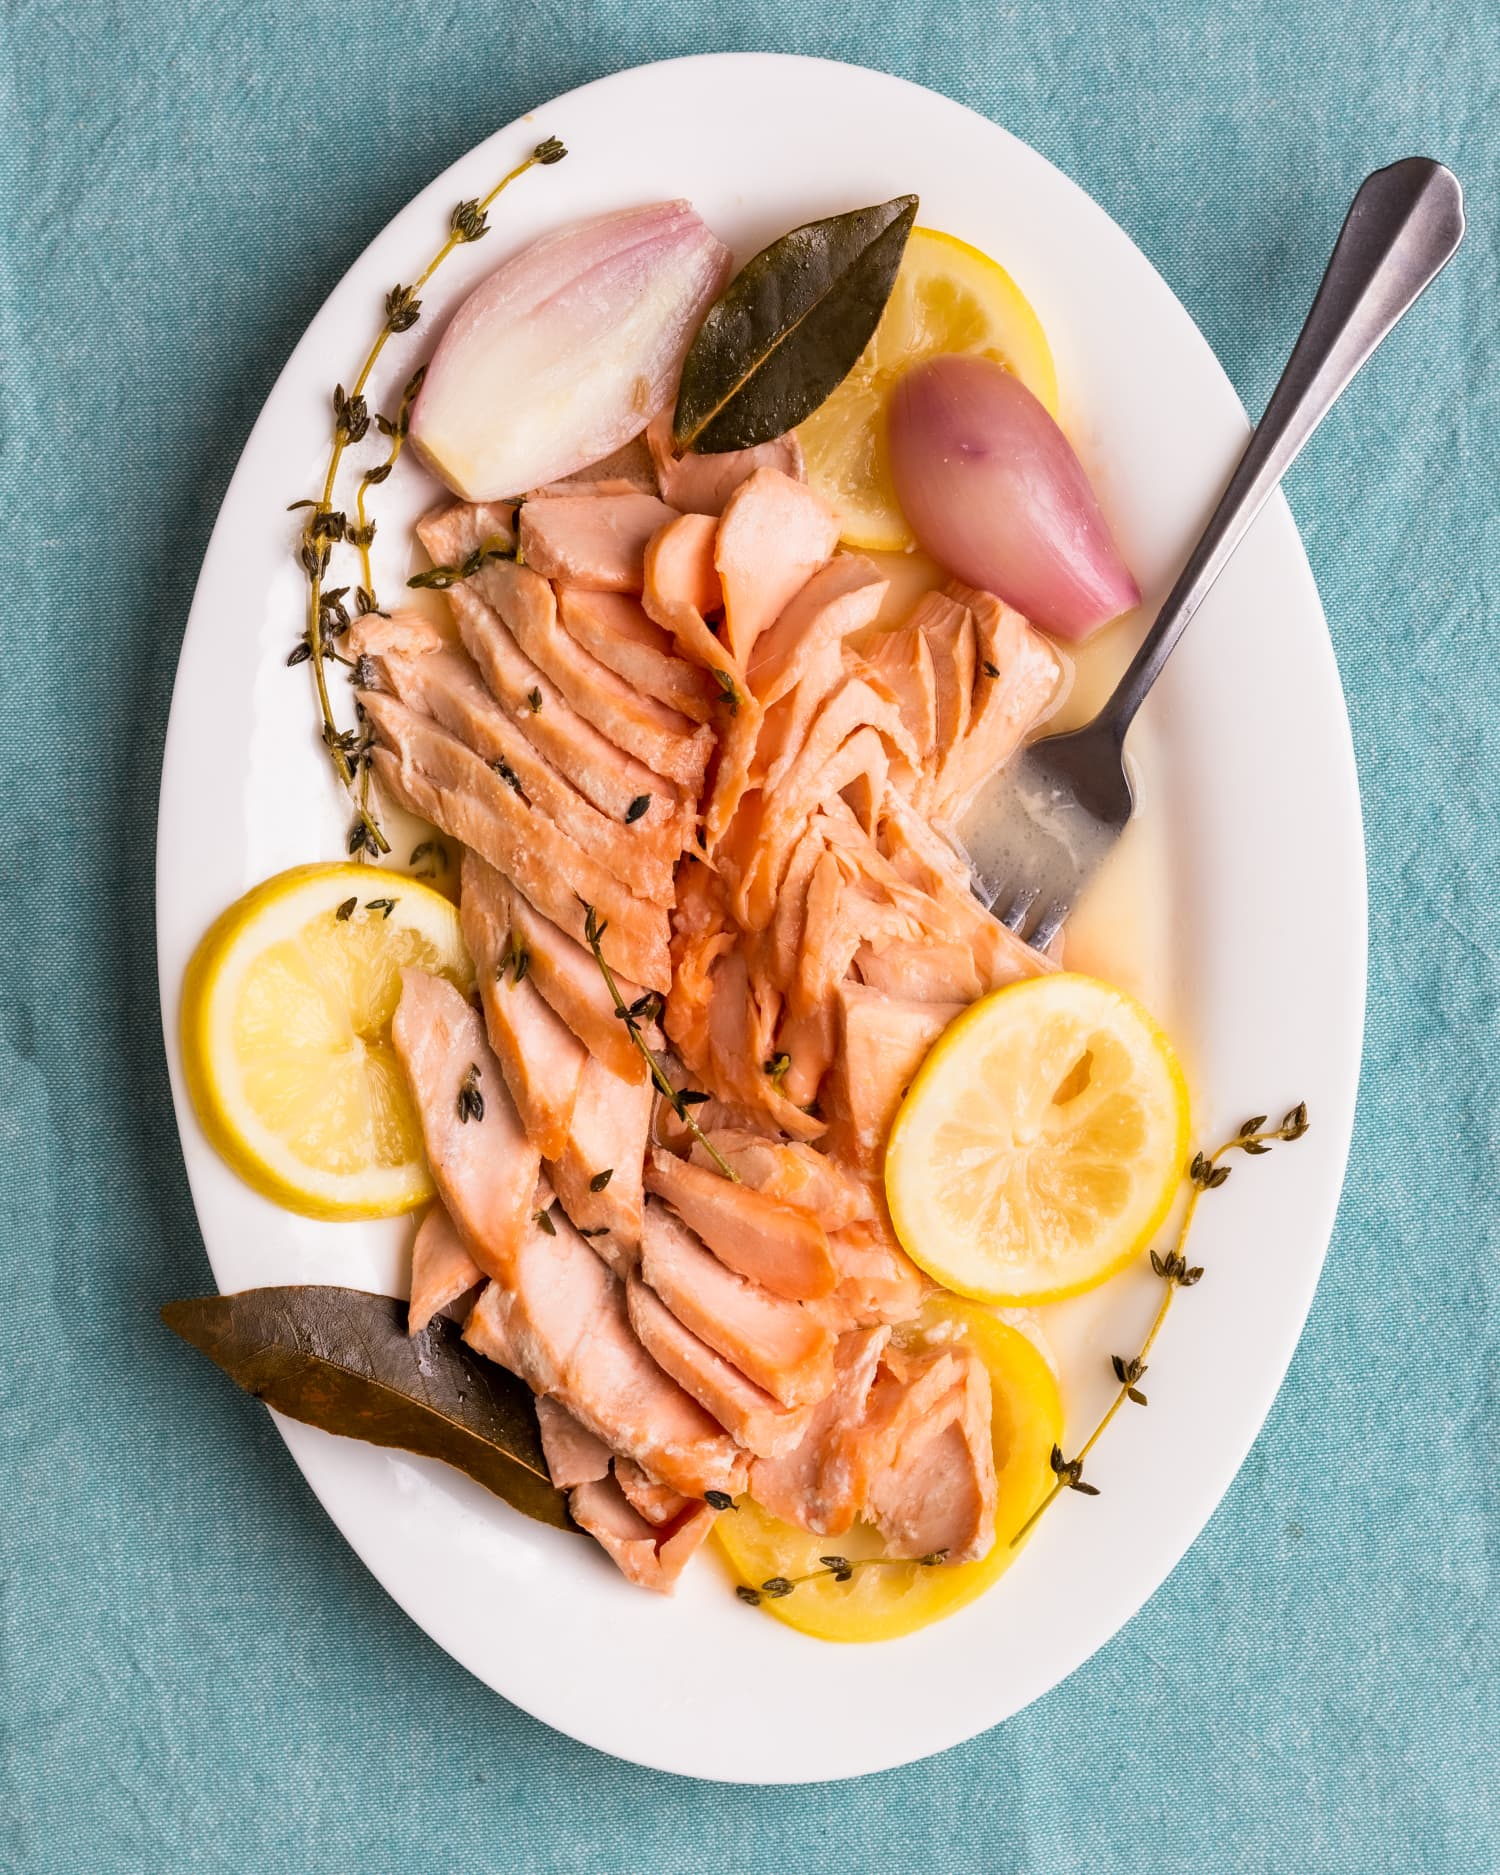 Buttermilk-Poached Salmon Is the Foolproof Salmon Method You Need to Memorize